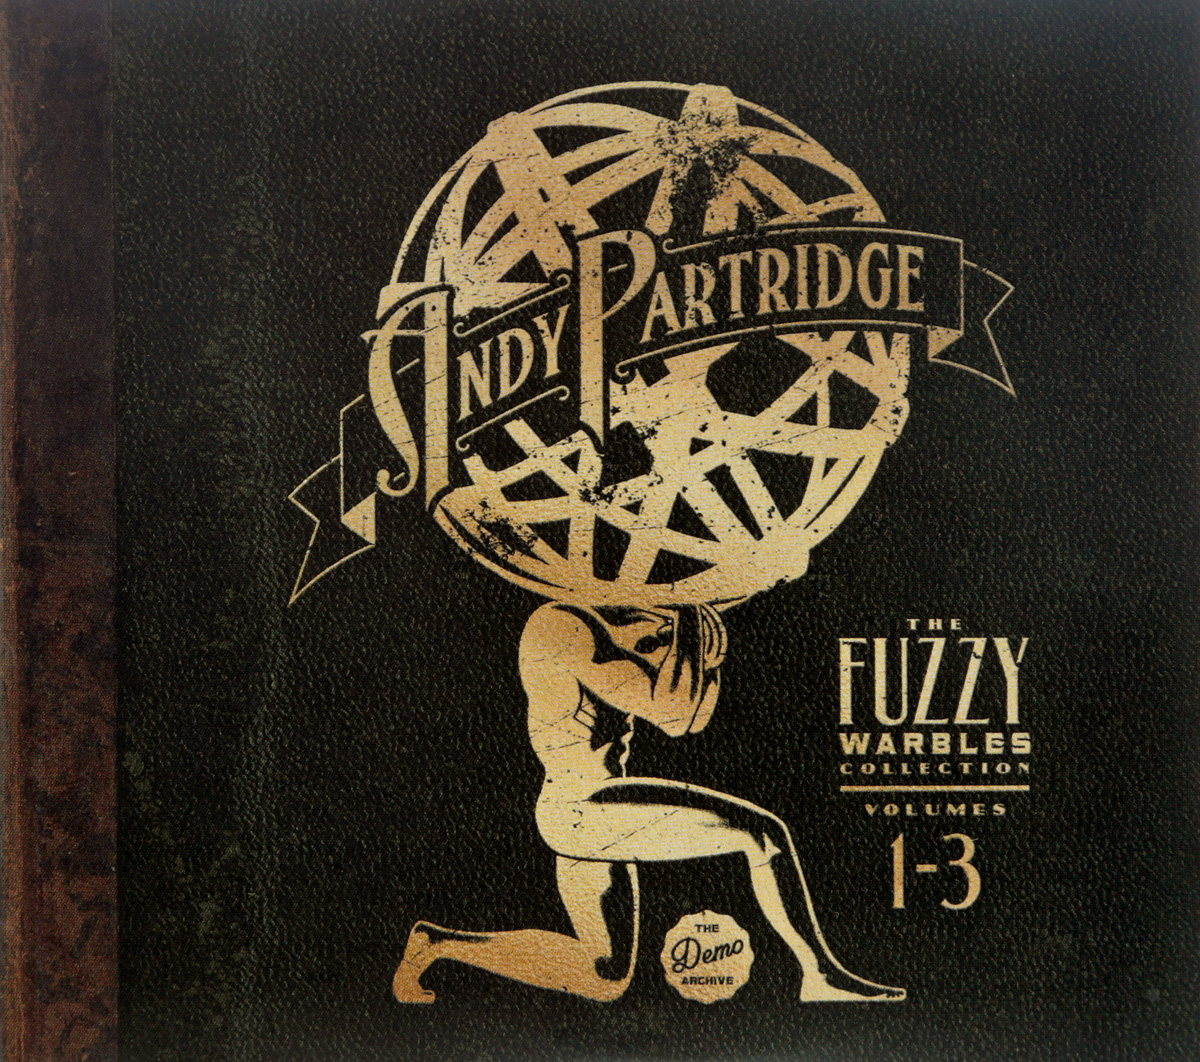 Andrew John Andy Partridge Andy Partridge. Fuzzy Warbles Volume 1-3 (3 CD) кеды andy z andy z an048awisq48